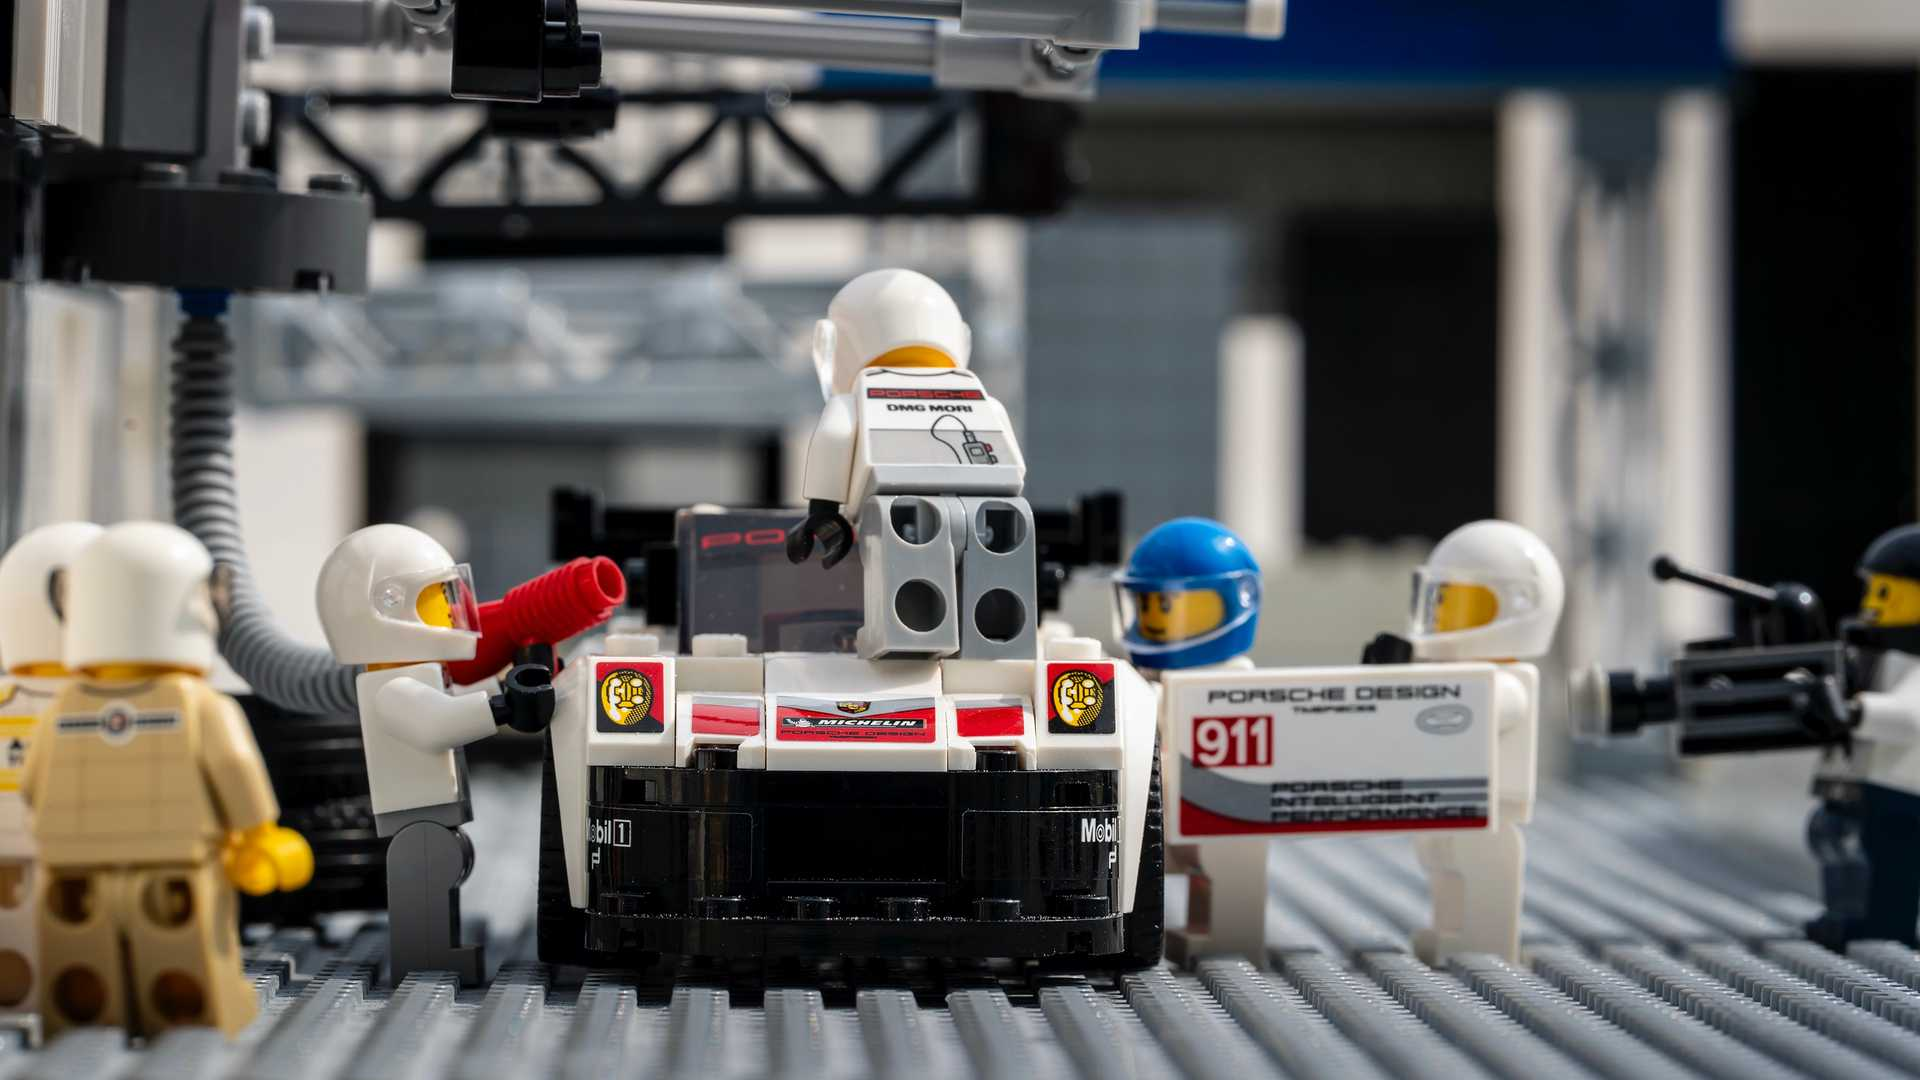 Porsche-Iconic-Moments-In-Lego-6